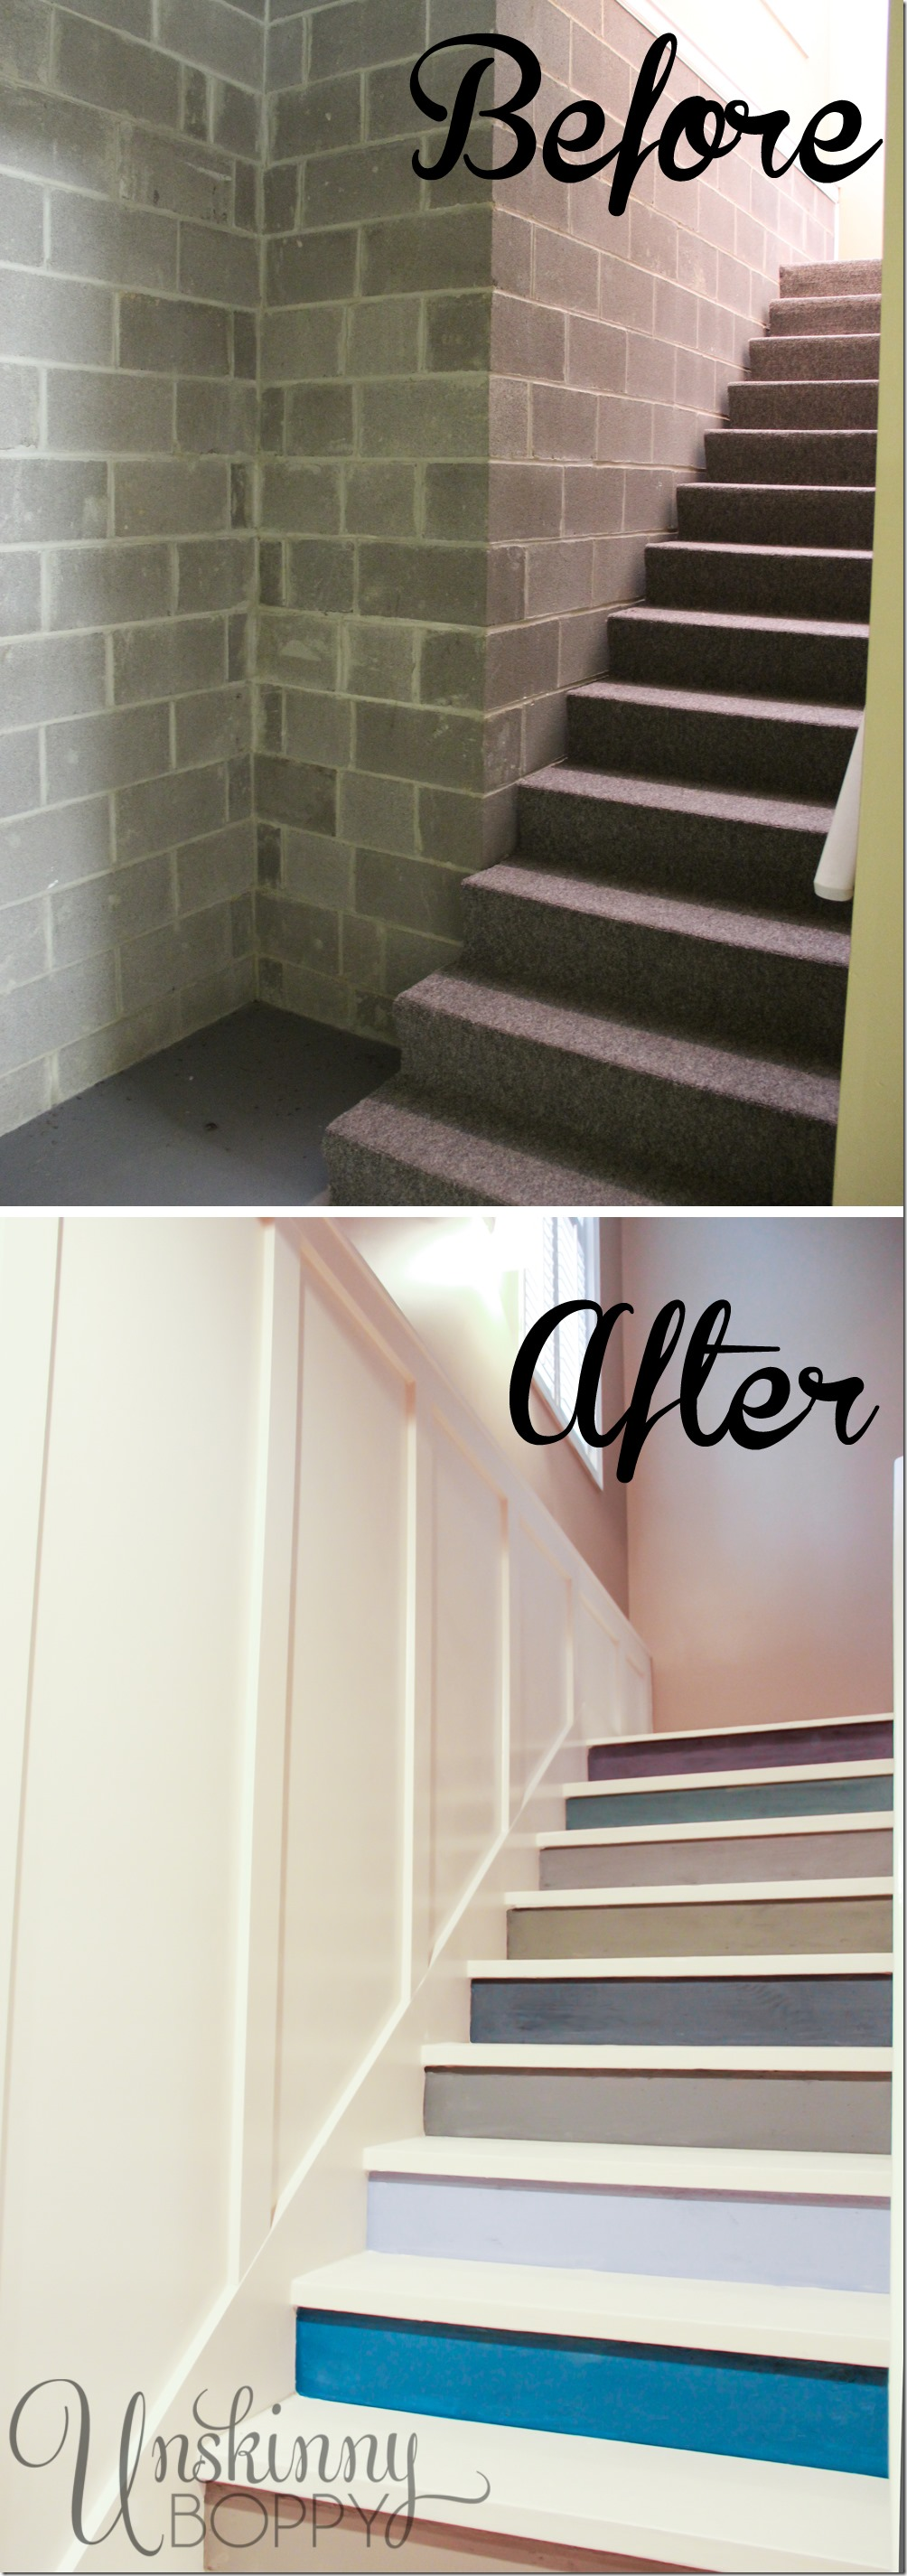 Before And After Of Basement Stairs Painted With Multicolored Paint.